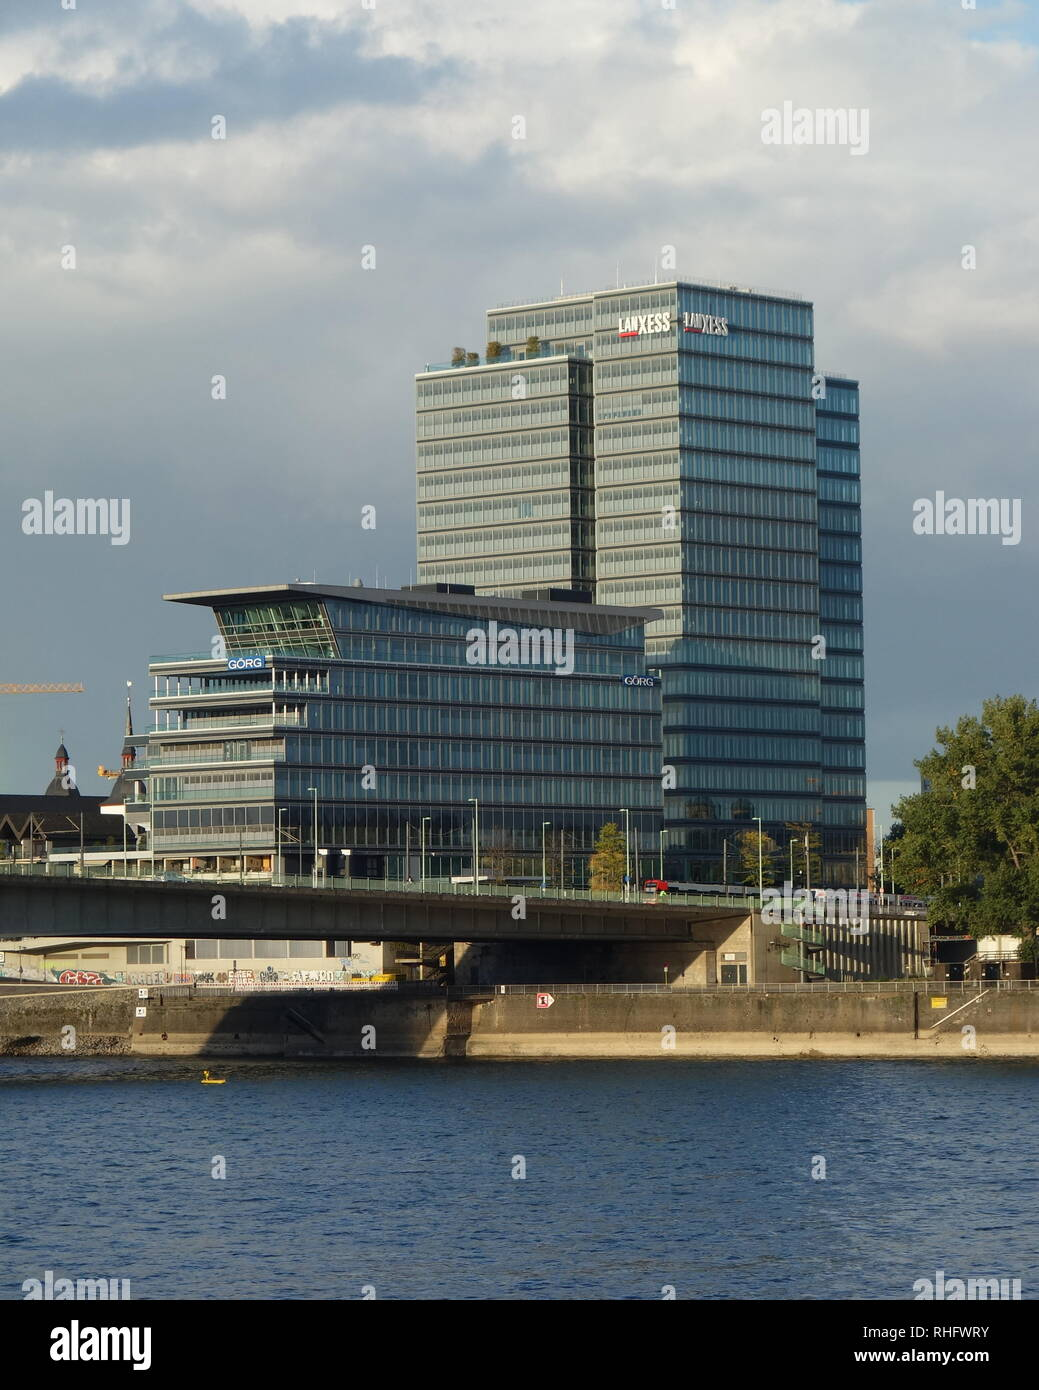 The corporate headquarters of the German chemicals company Lanxess, on the banks of the River Rhine in Cologne. - Stock Image